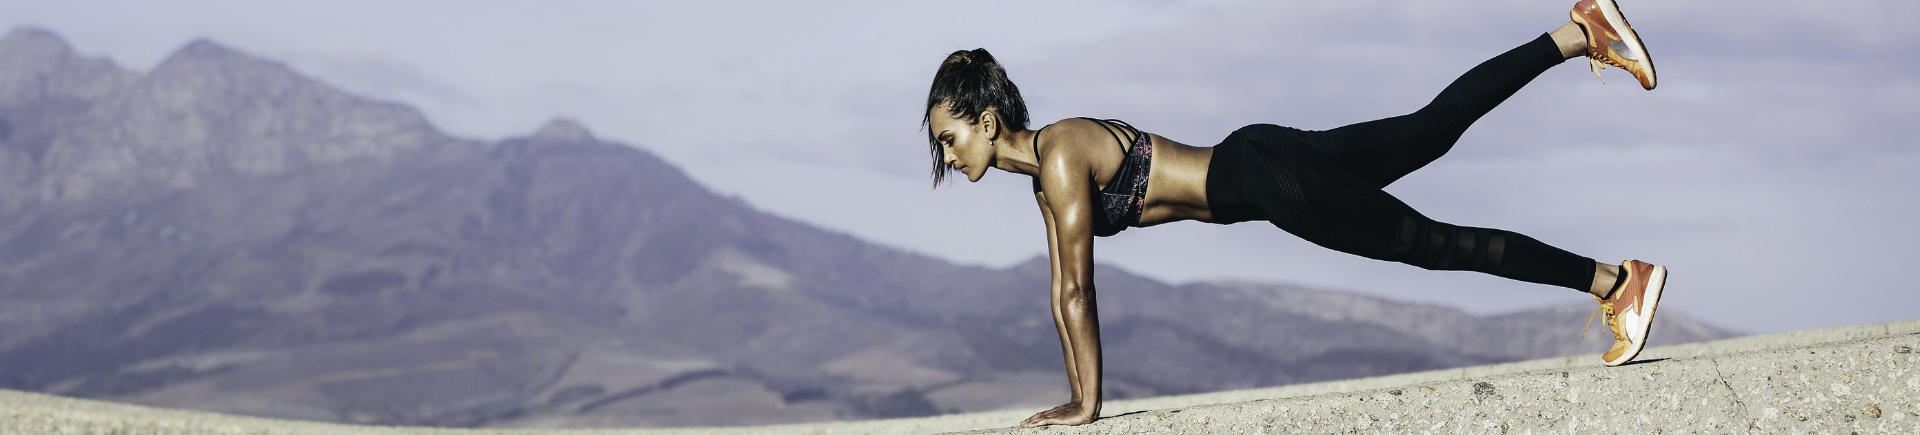 fit young woman working out outdoors